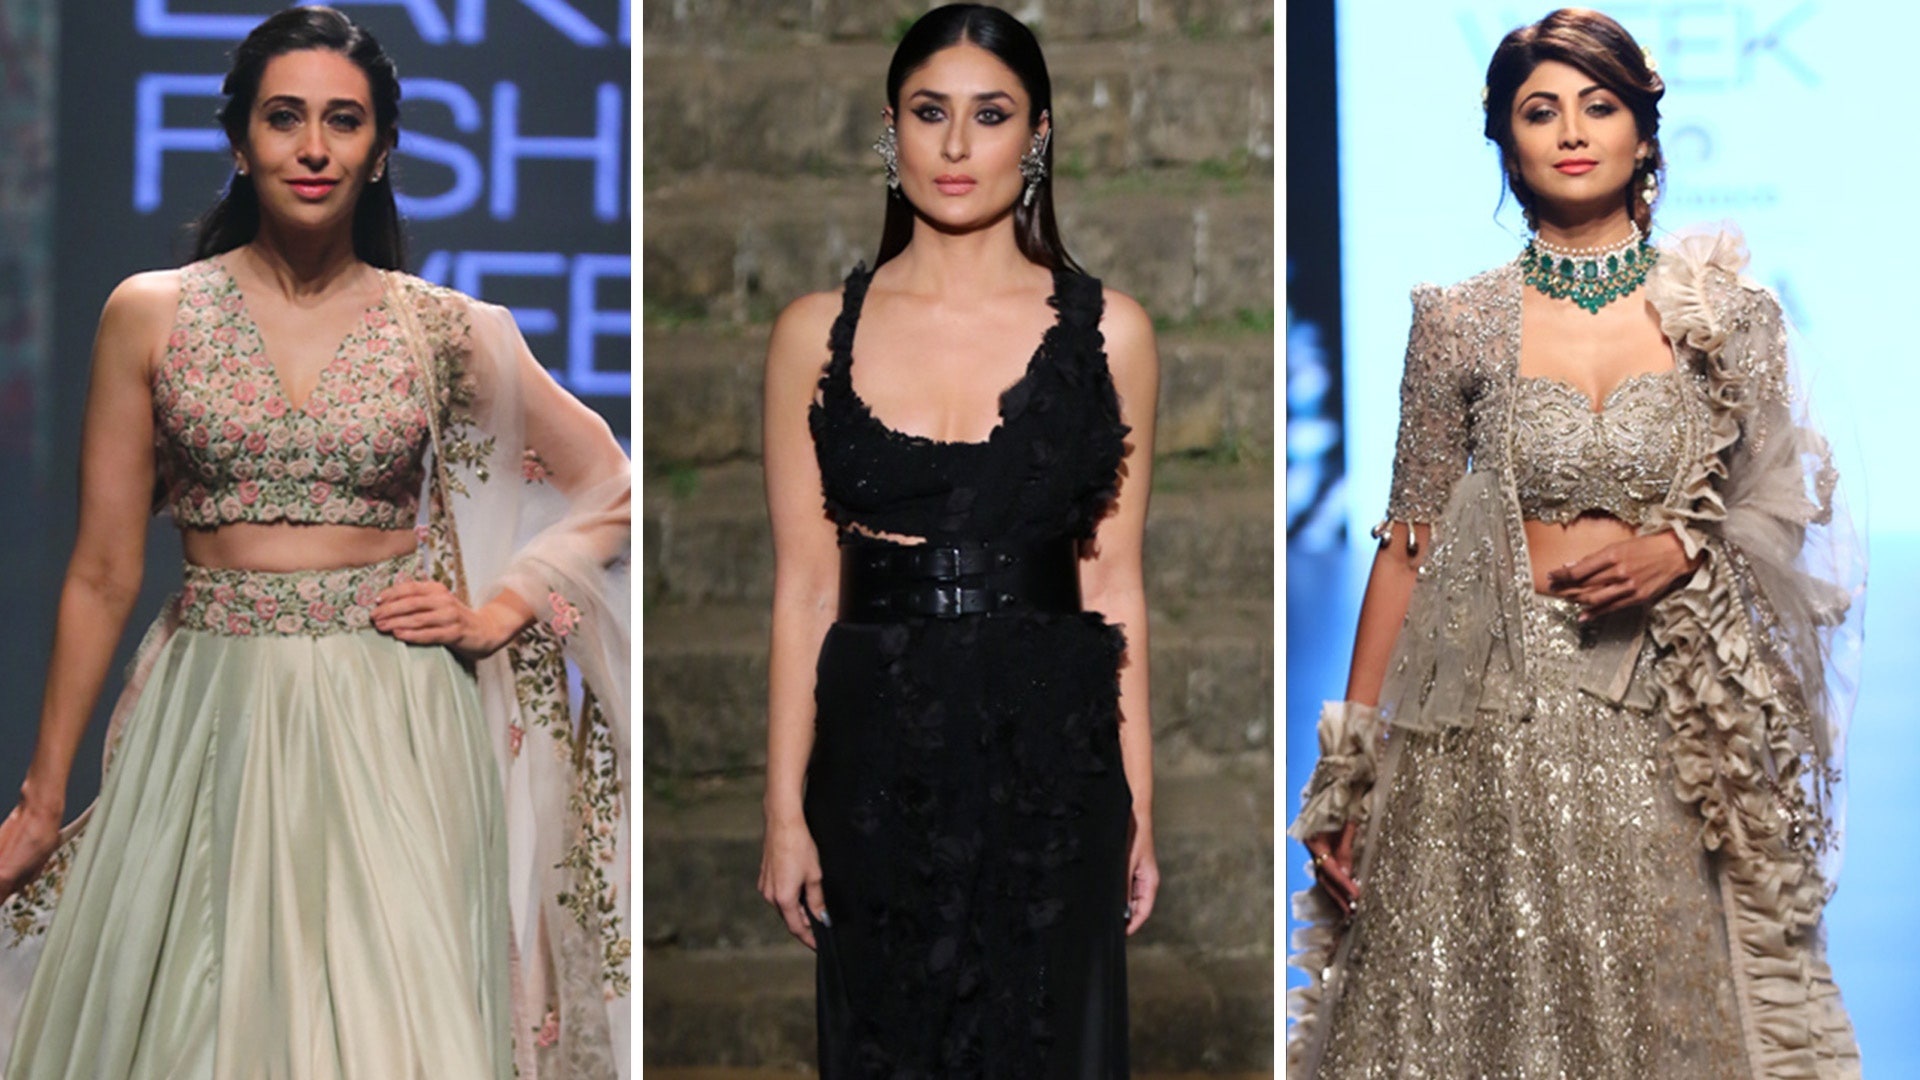 The showstopper syndrome in fashion shows